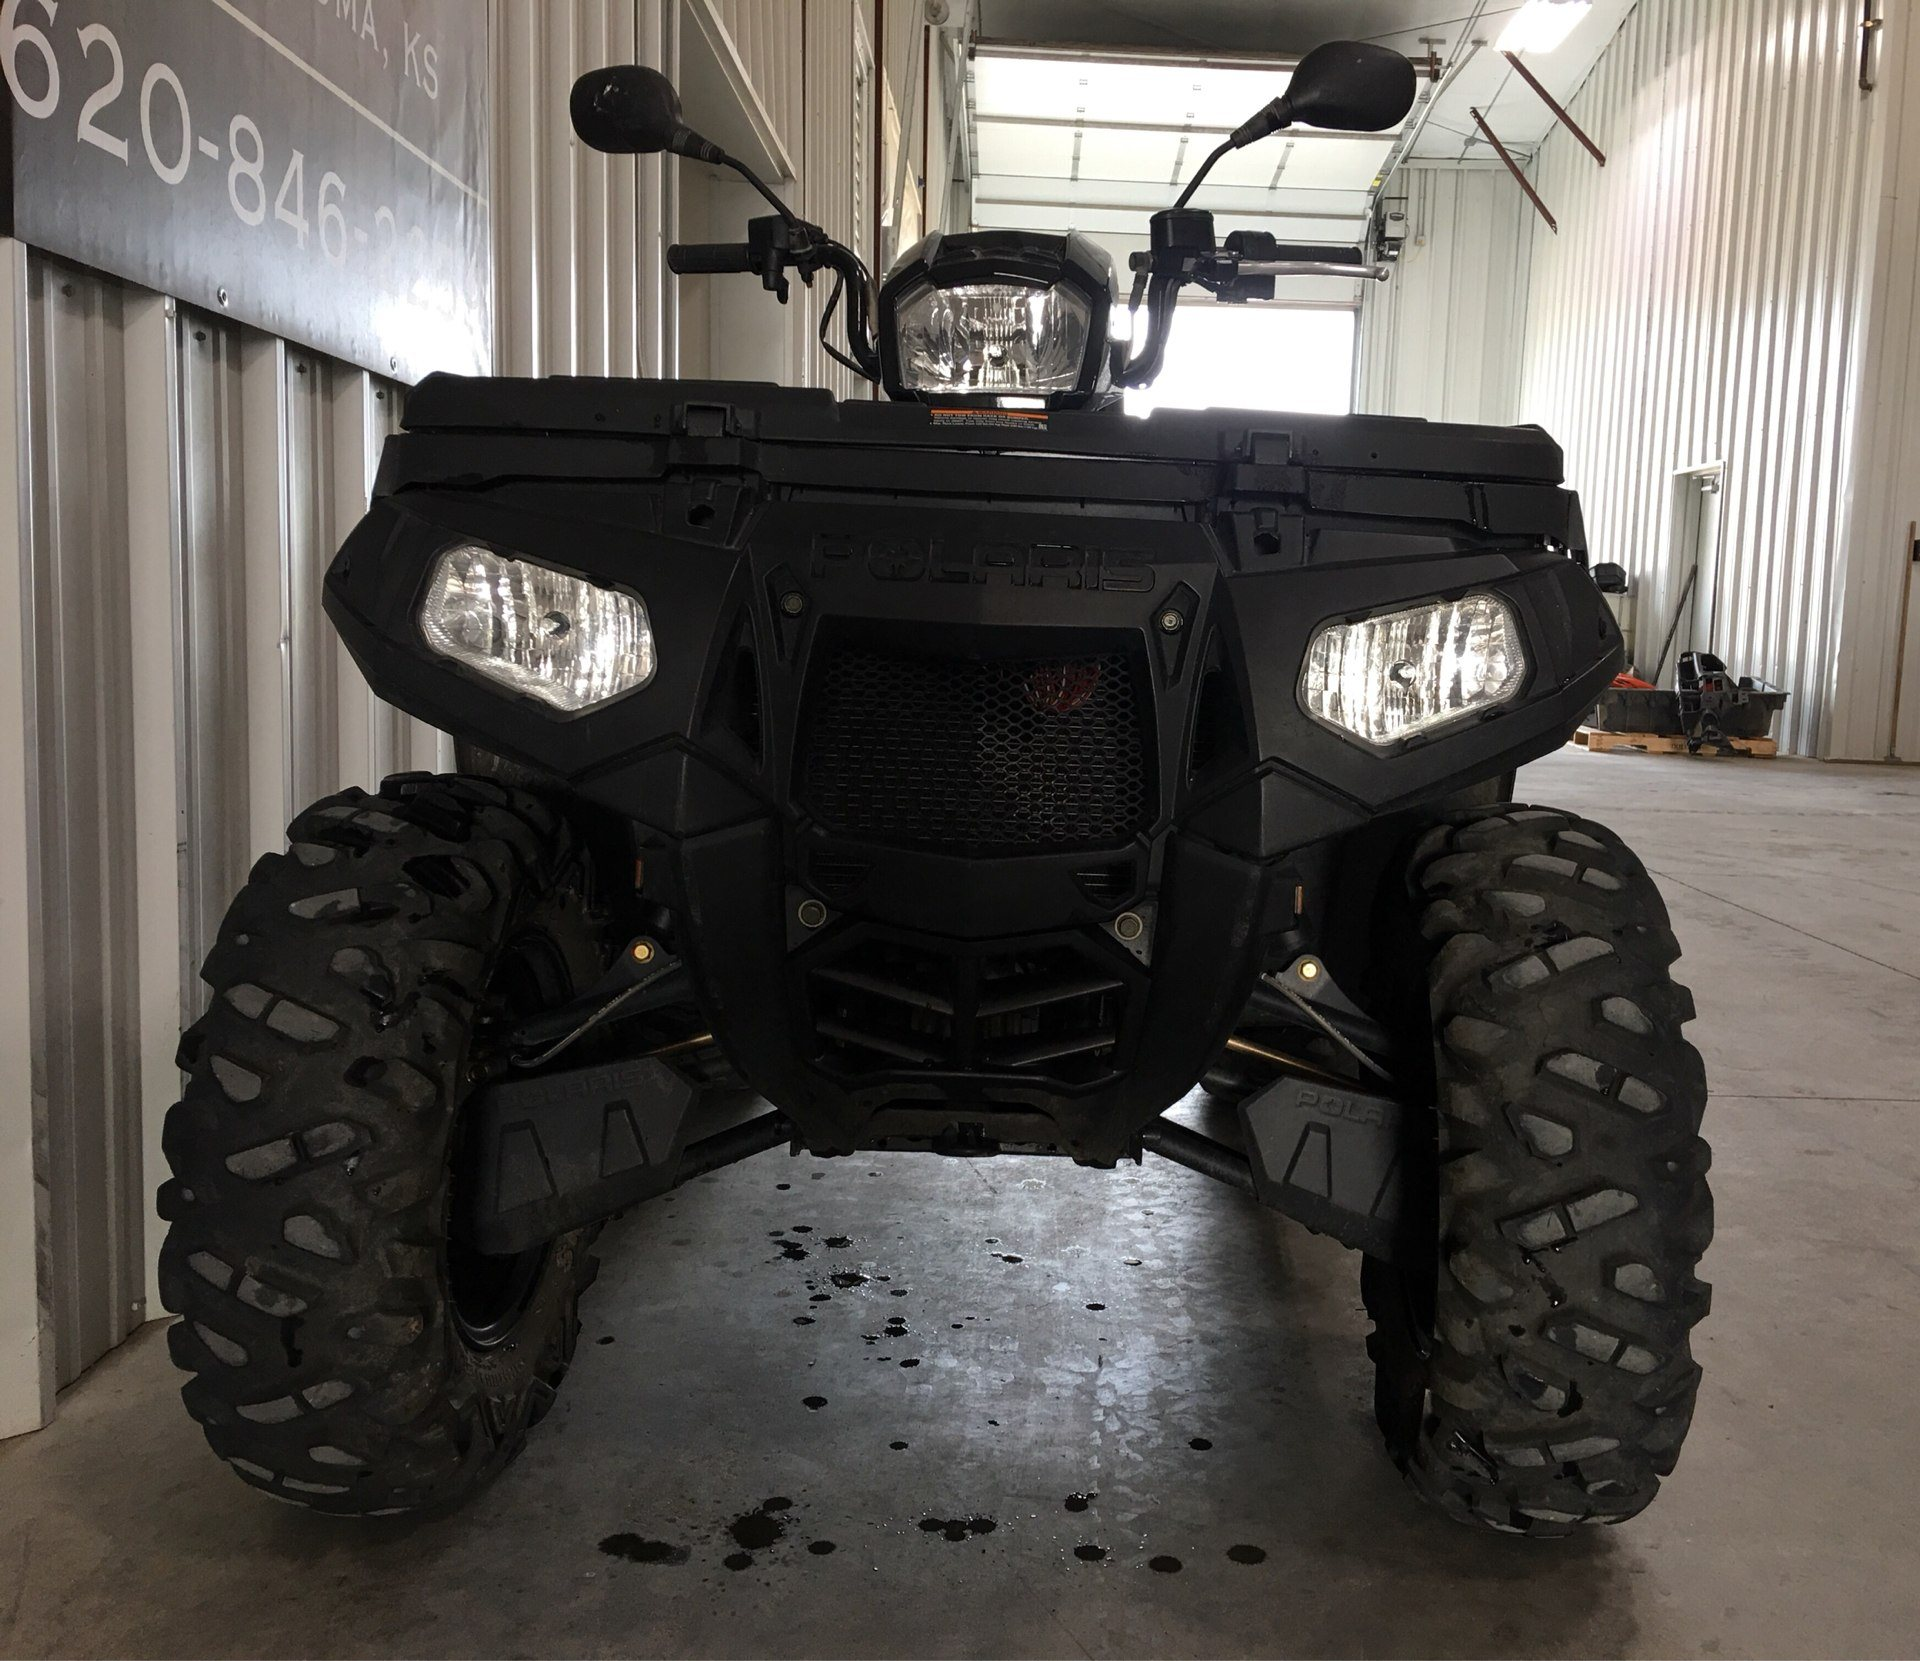 2017 Polaris Sportsman Touring XP 1000 in Montezuma, Kansas - Photo 10